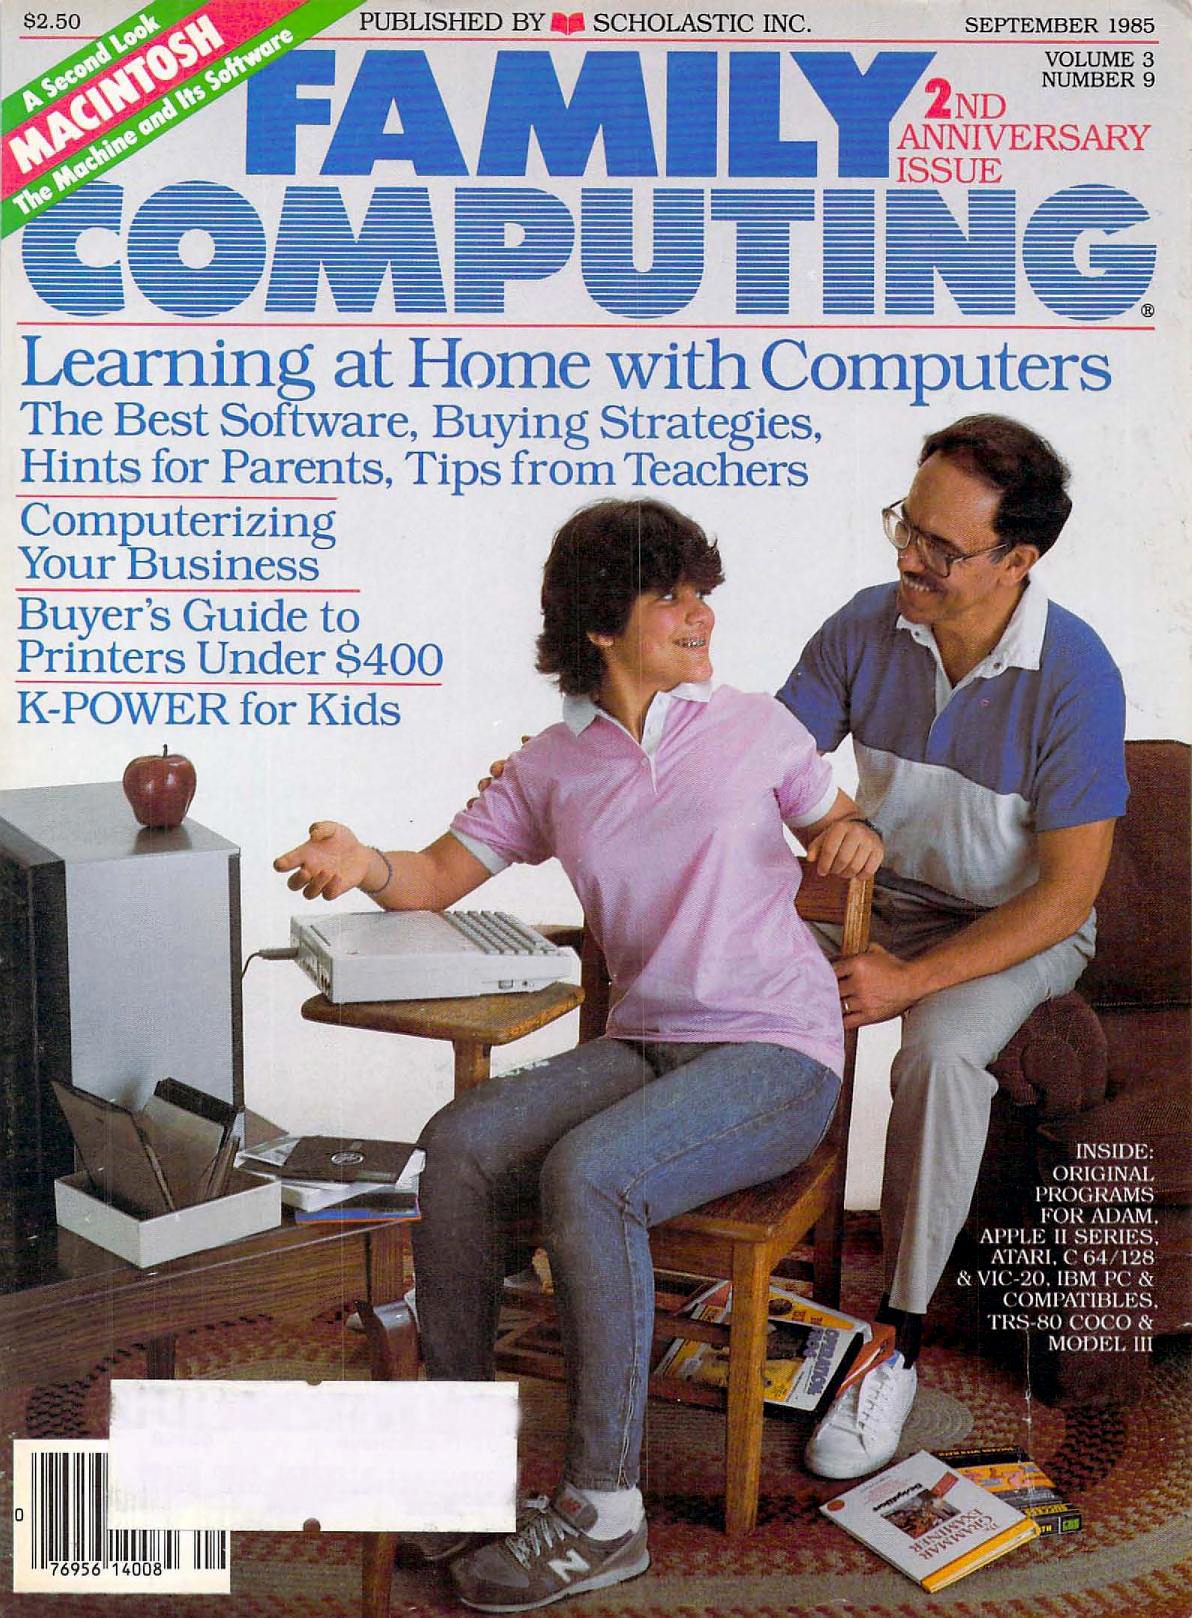 Family_Computing_Issue_25_1985_Sep_0000